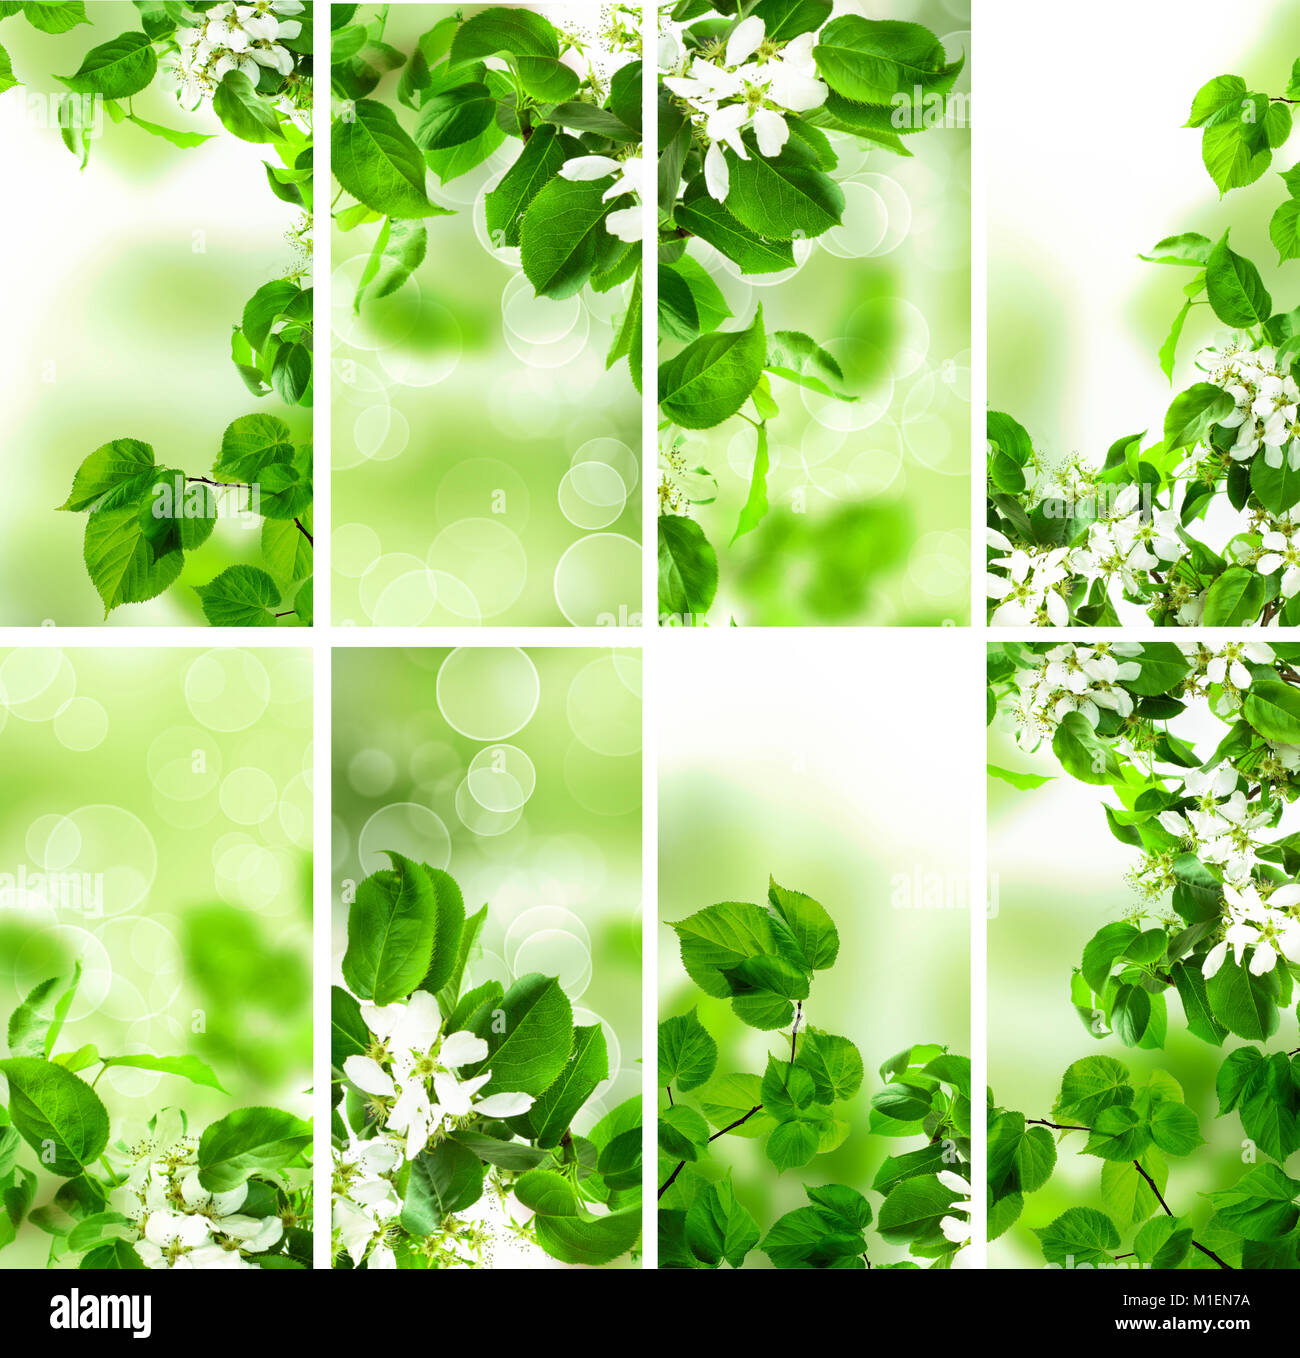 abstract green wallpaper background with spring foliage, bokeh stock